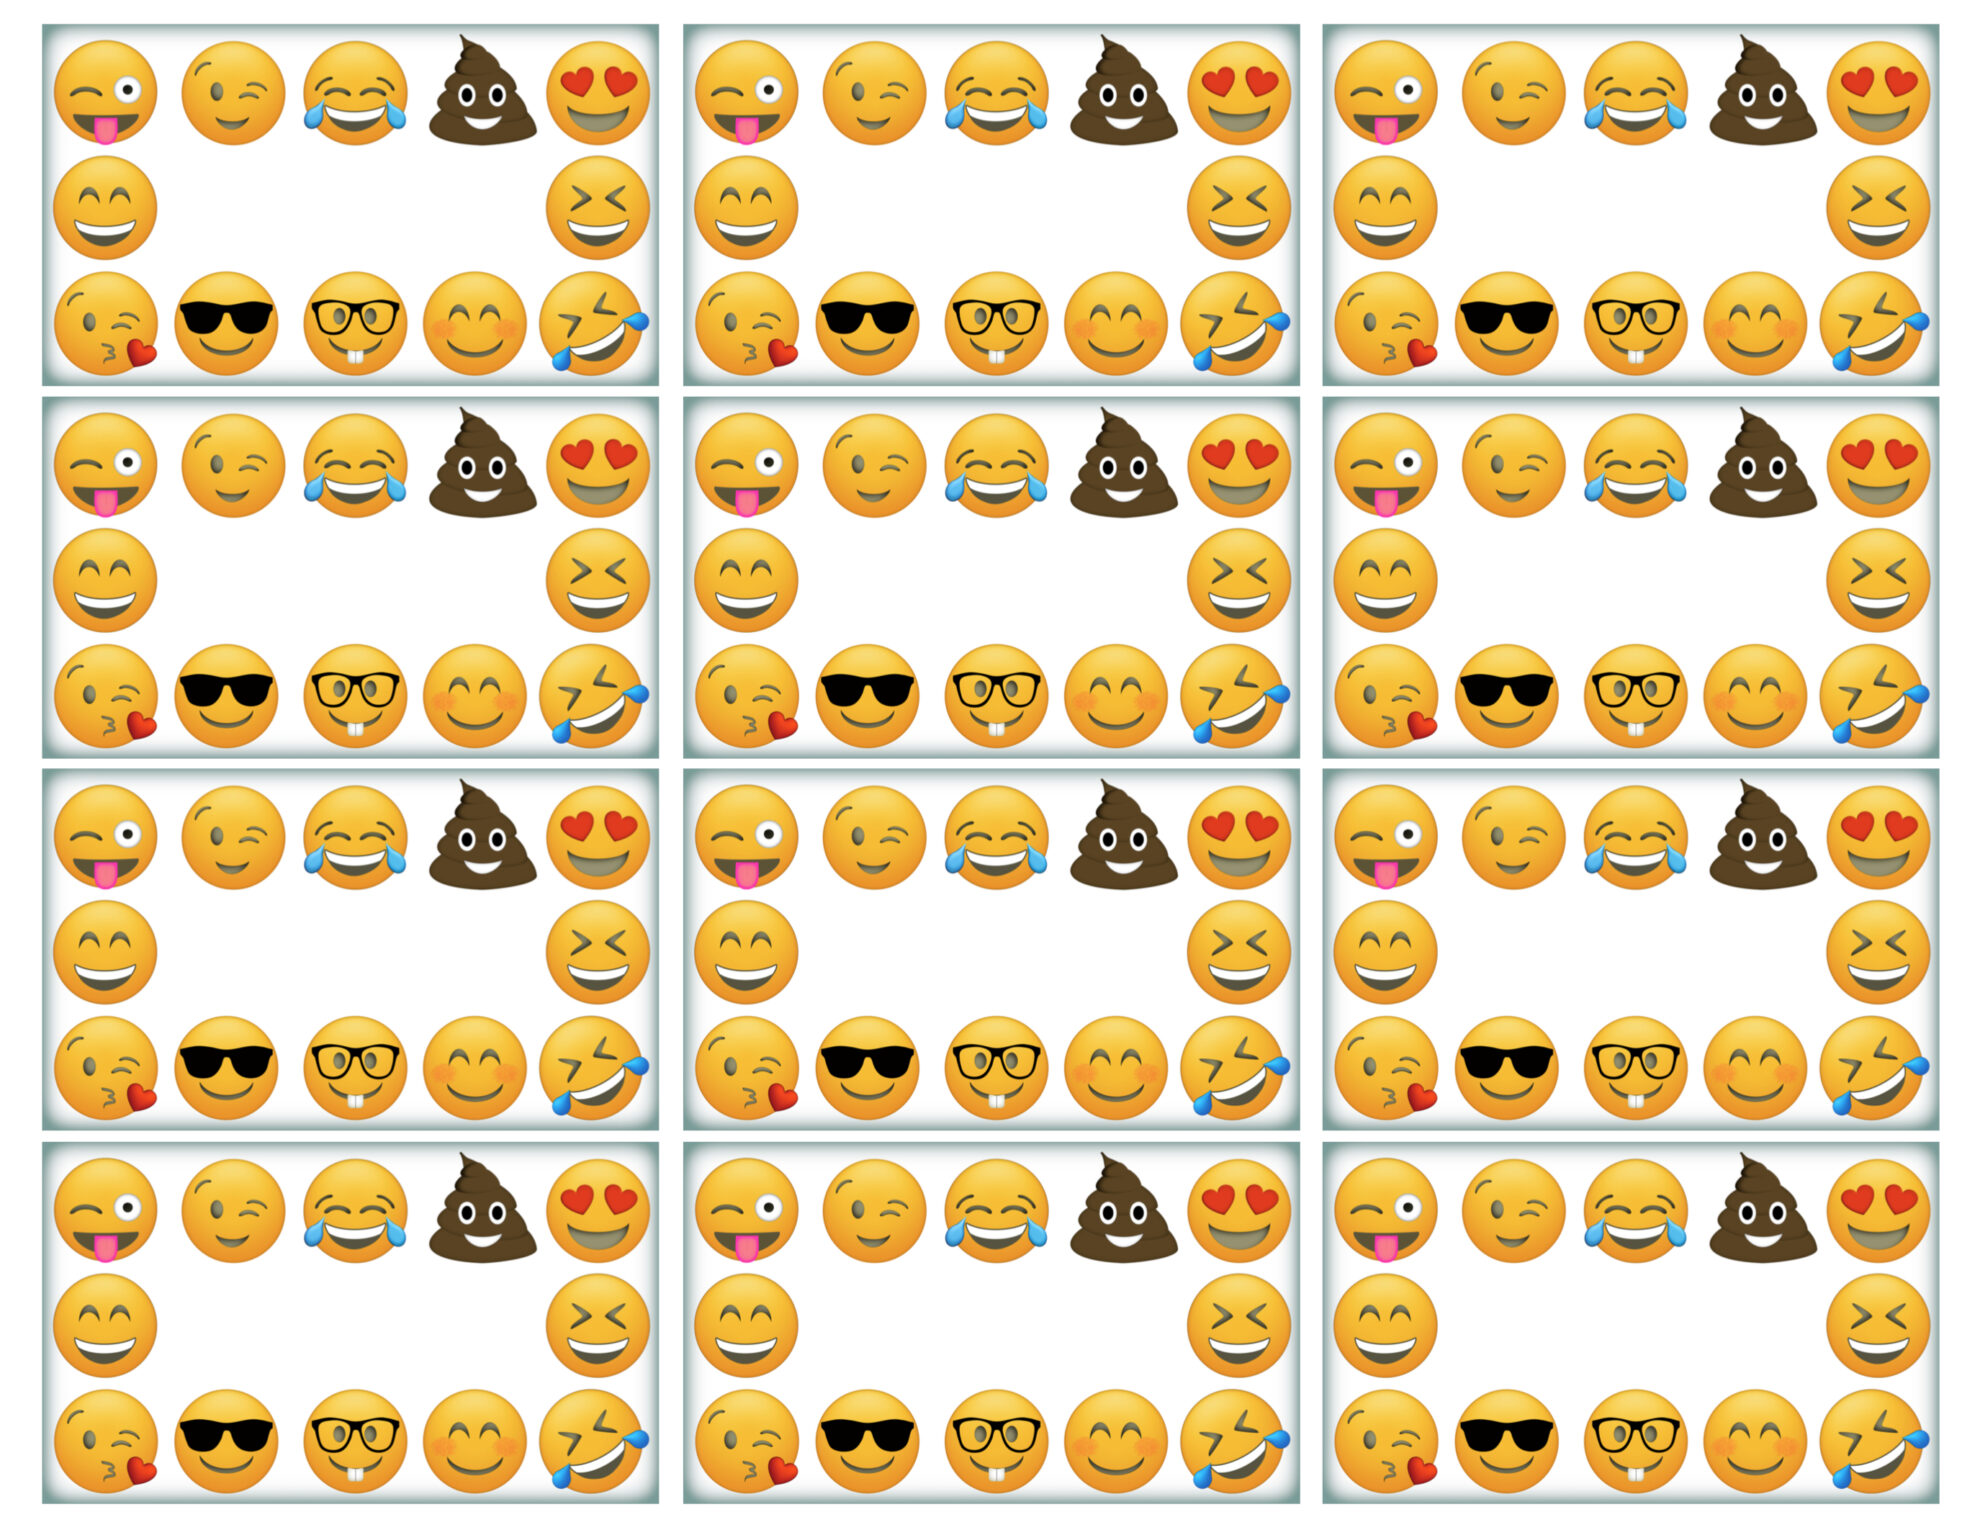 graphic about Printable Emoji Stickers titled Emoji Labels, Emoji Point Playing cards, Emoji Foods Labels - Paper